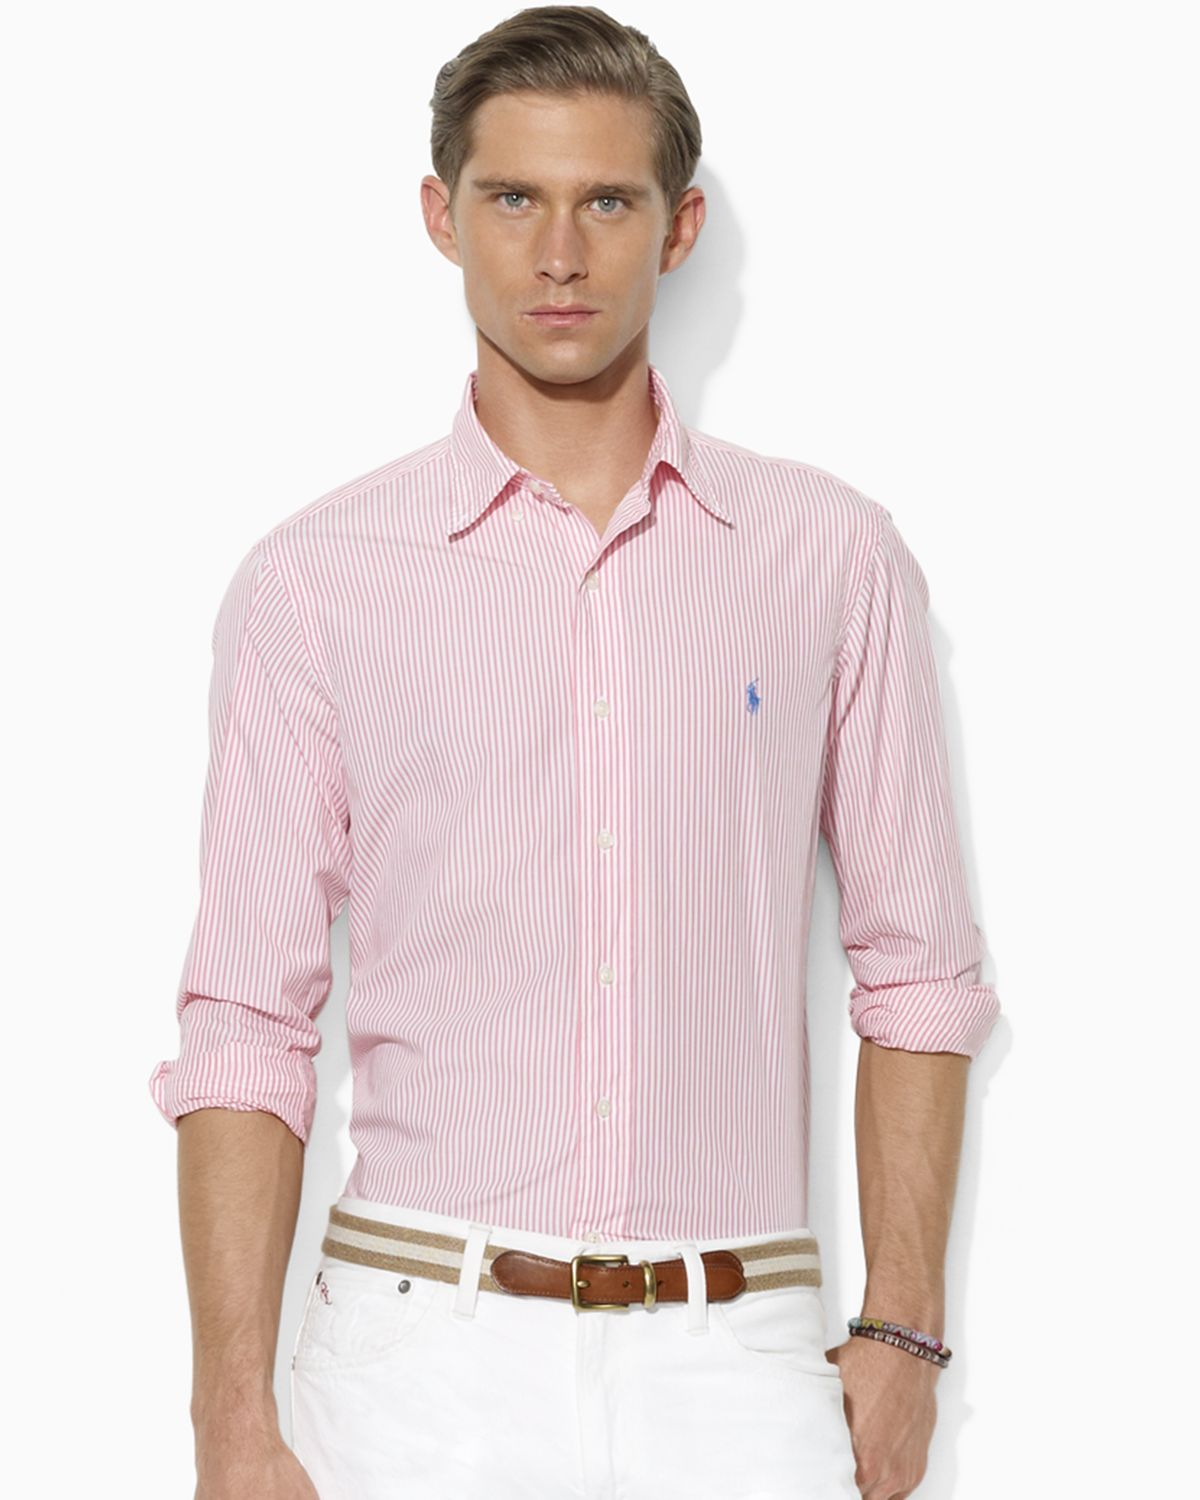 Ralph lauren polo custom fit long sleeved striped button for Pink and white ralph lauren shirt